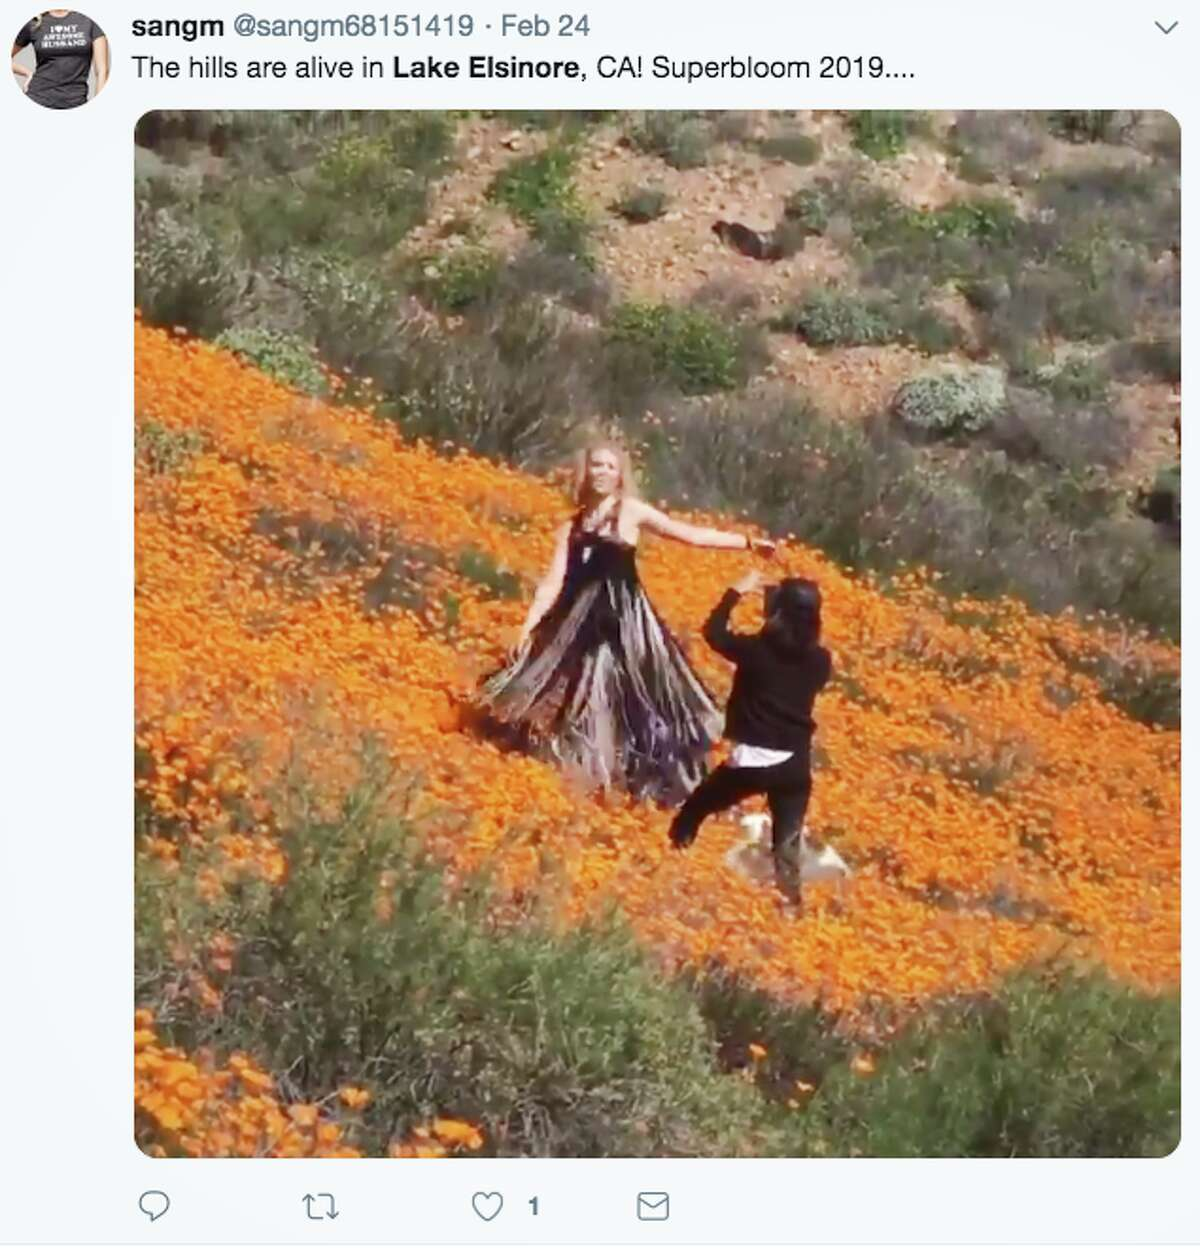 Social media users are sharing images of the poppy display in Lake Elsinore, Calif.